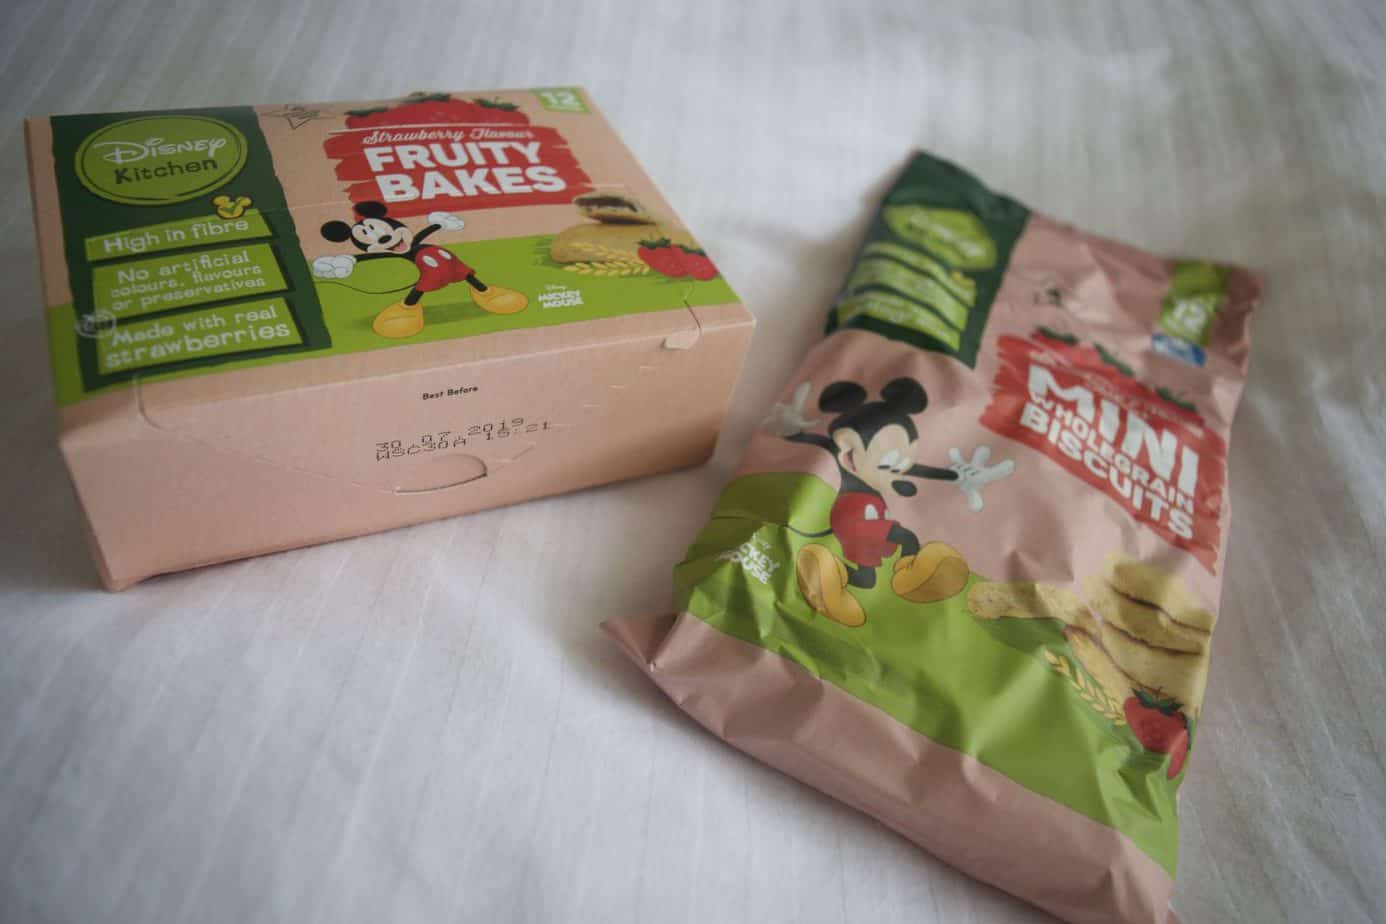 disney snacks from poundland mini biscuits and fruity bake bars